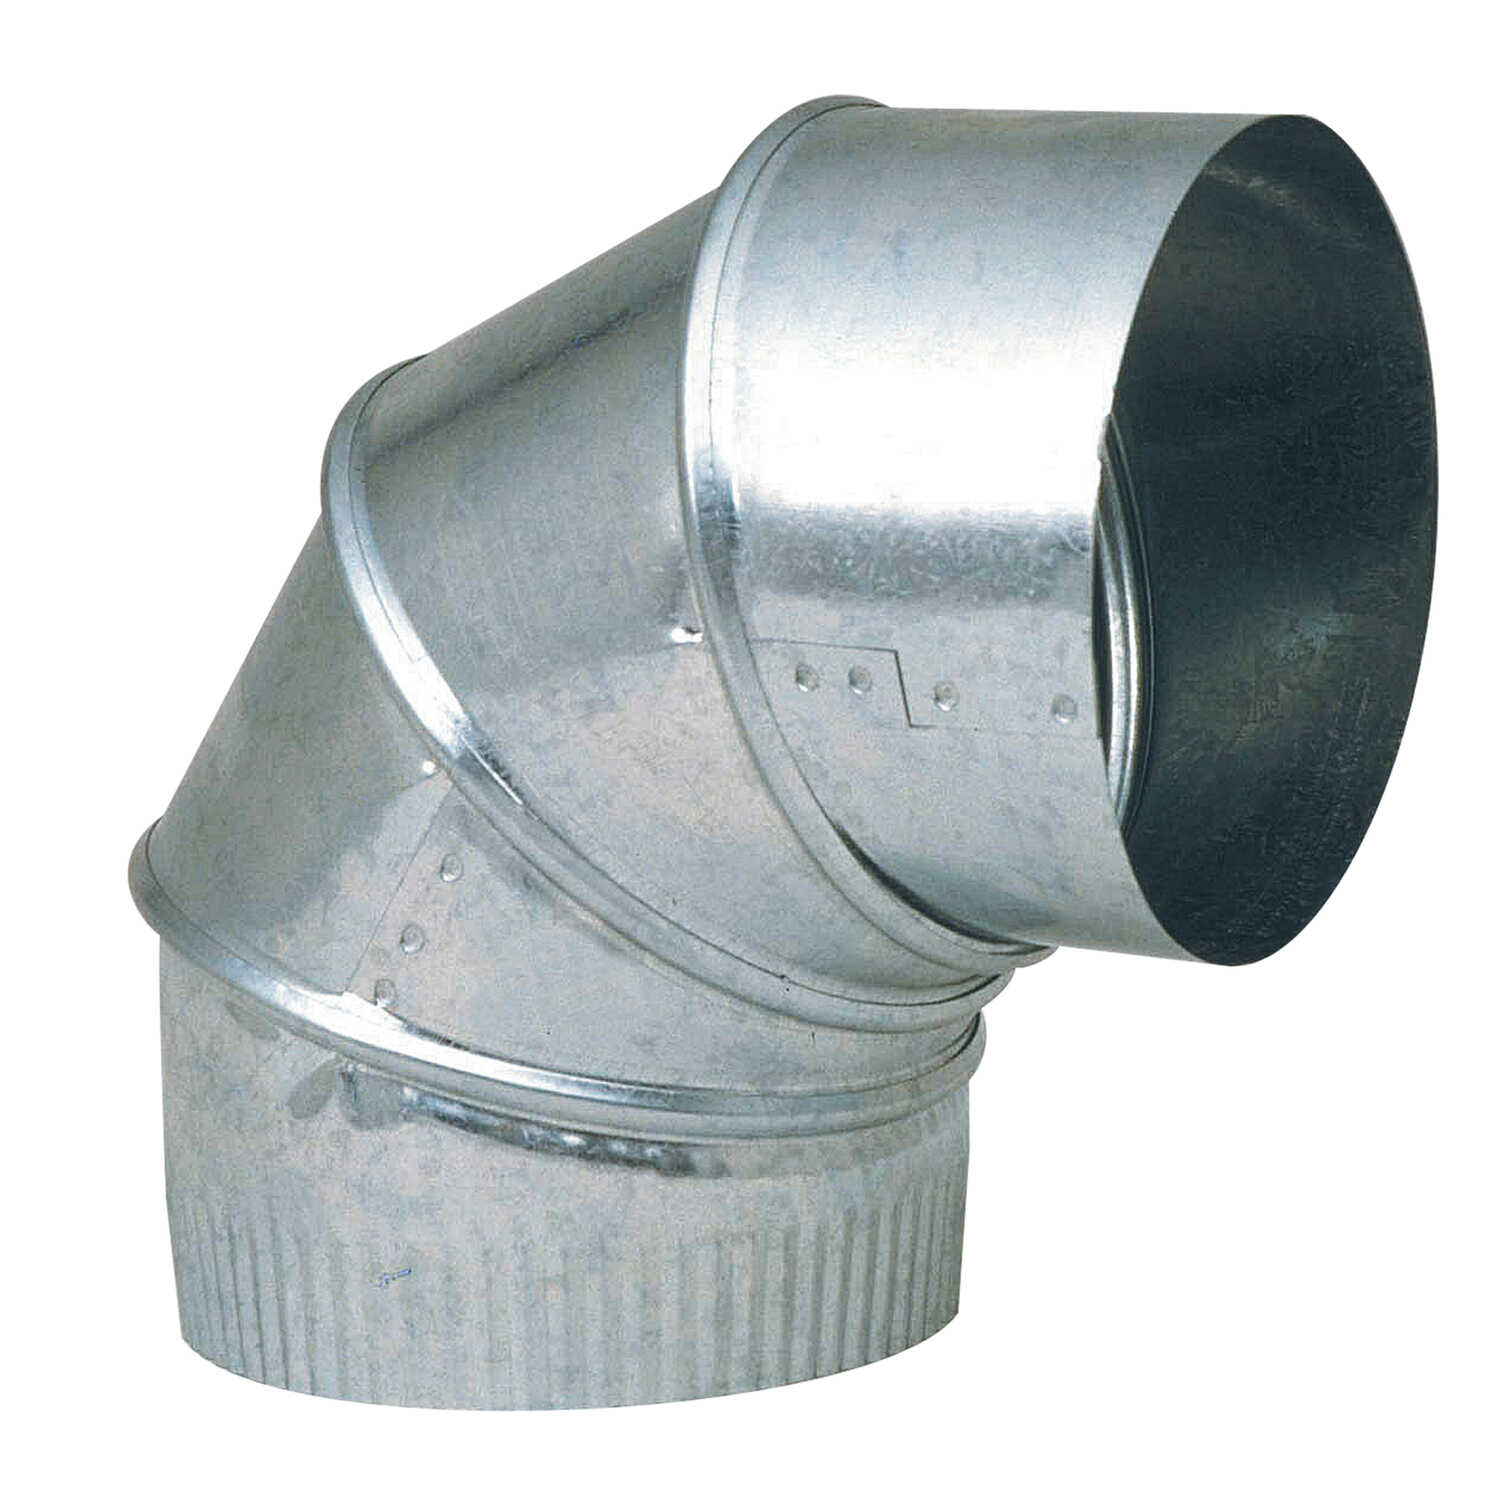 Imperial Manufacturing  4 in. Dia. x 4 in. Dia. Adjustable 90 deg. Galvanized SteelSteel  Stove Pipe